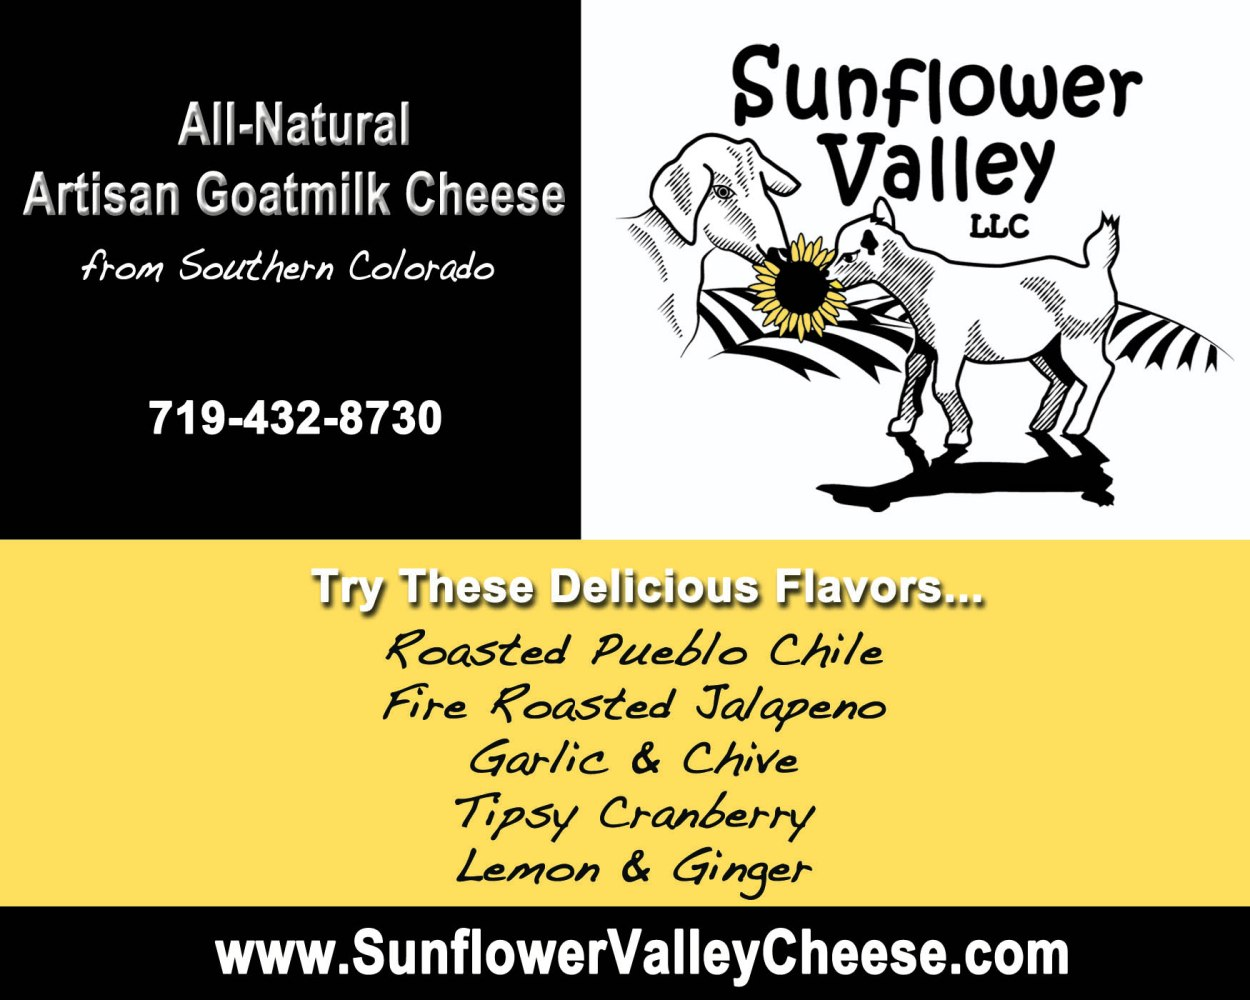 Sunflower Valley Advertisement - Chile Chili Festival 2012